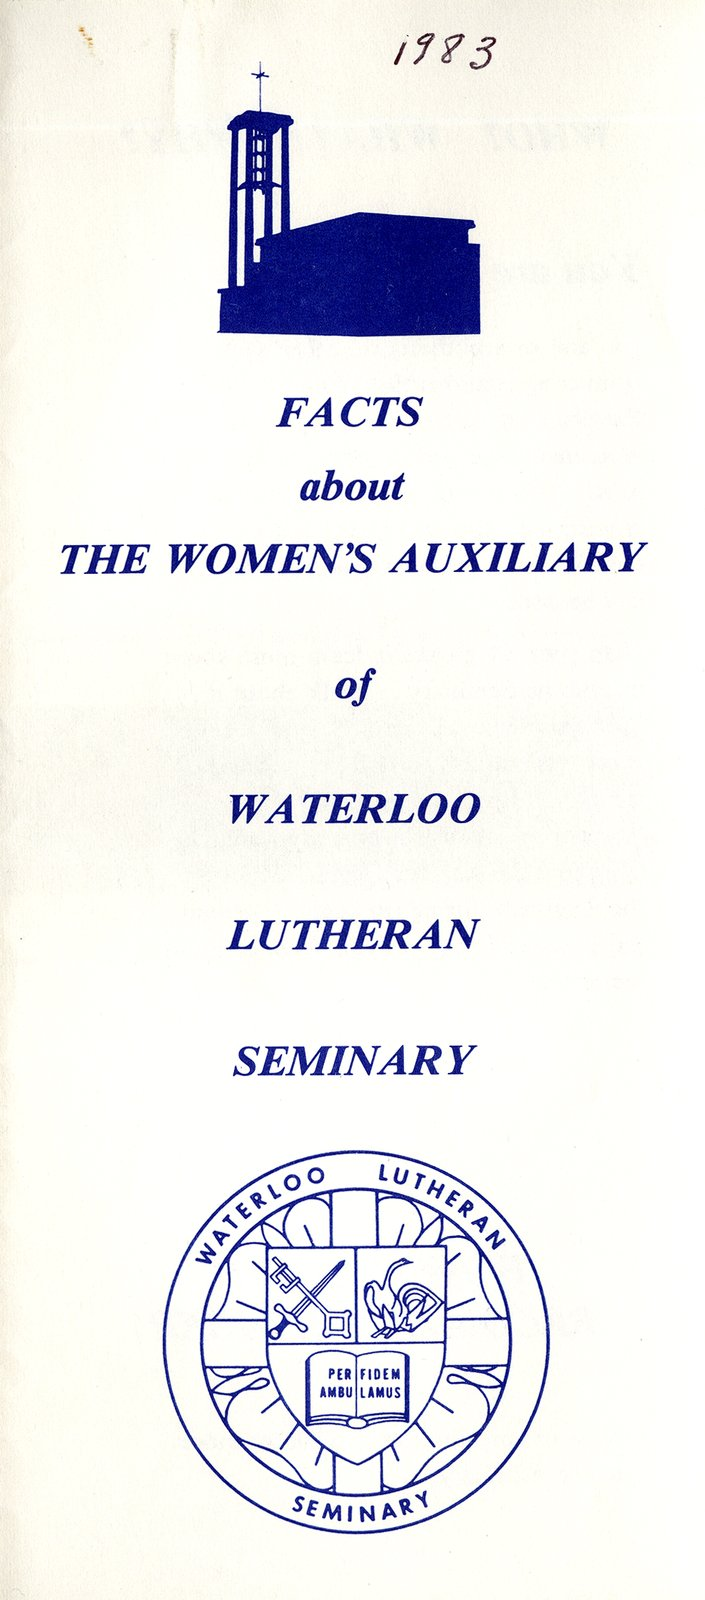 Facts About The Women's Auxiliary of Waterloo Lutheran Seminary, 1983